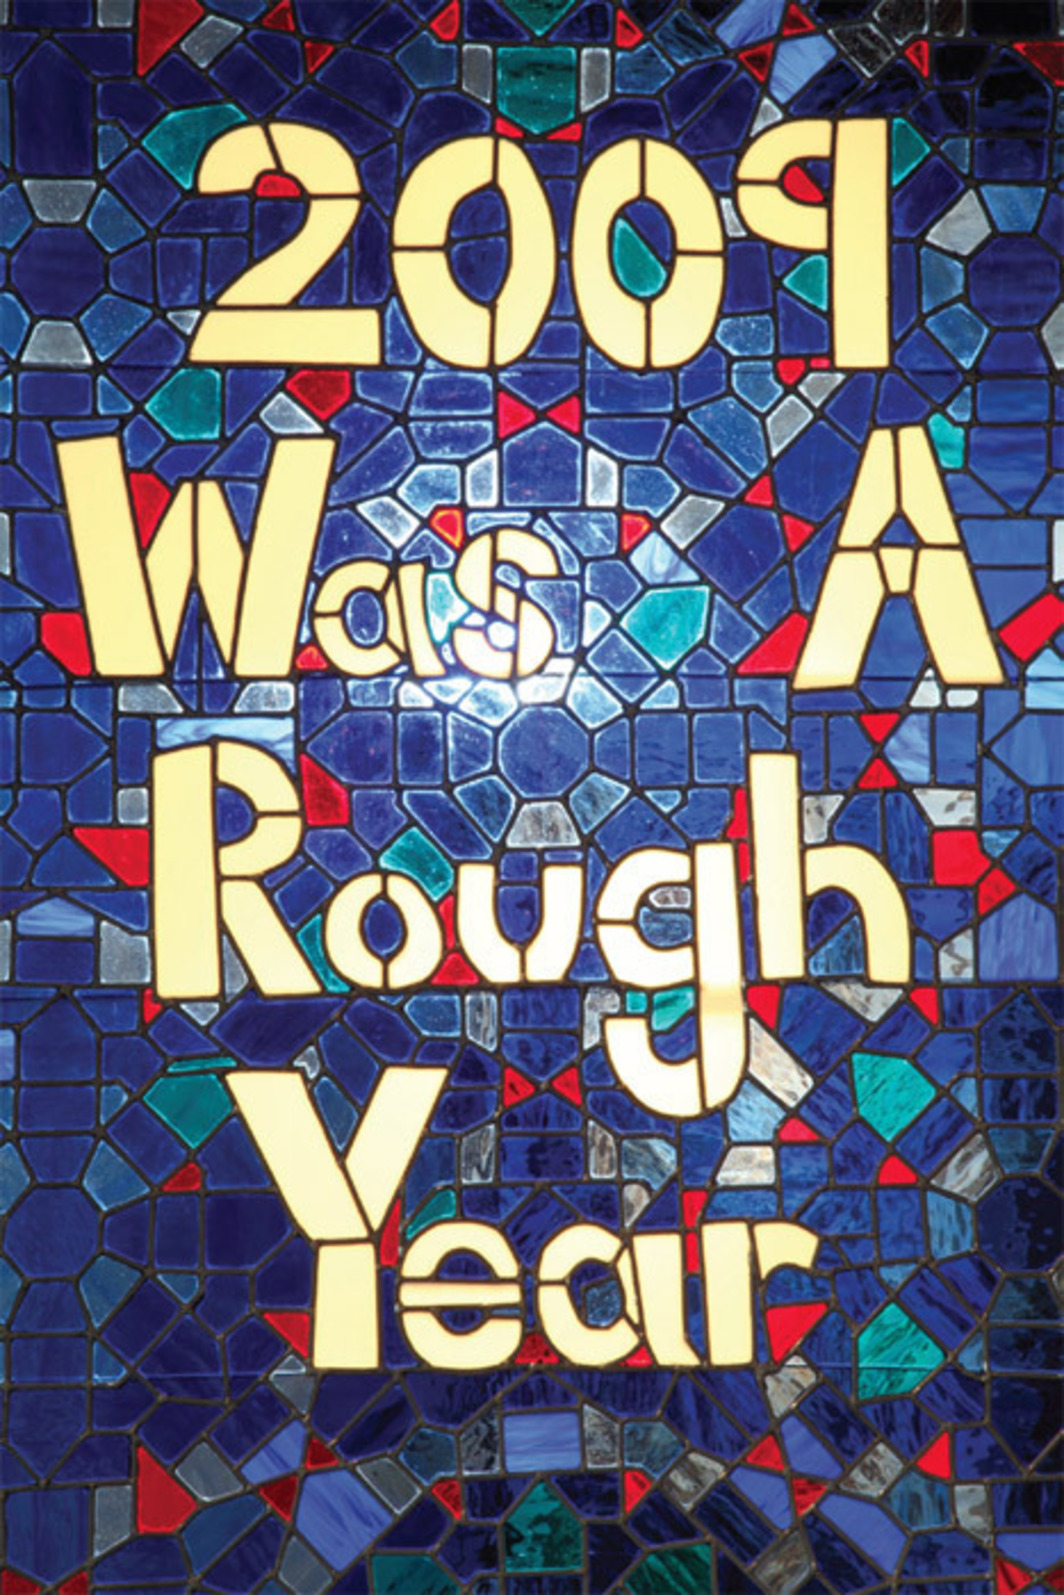 "Lilly McElroy, 2009 Was A Rough Year, 2010, stained-glass window, 66 x 48""."